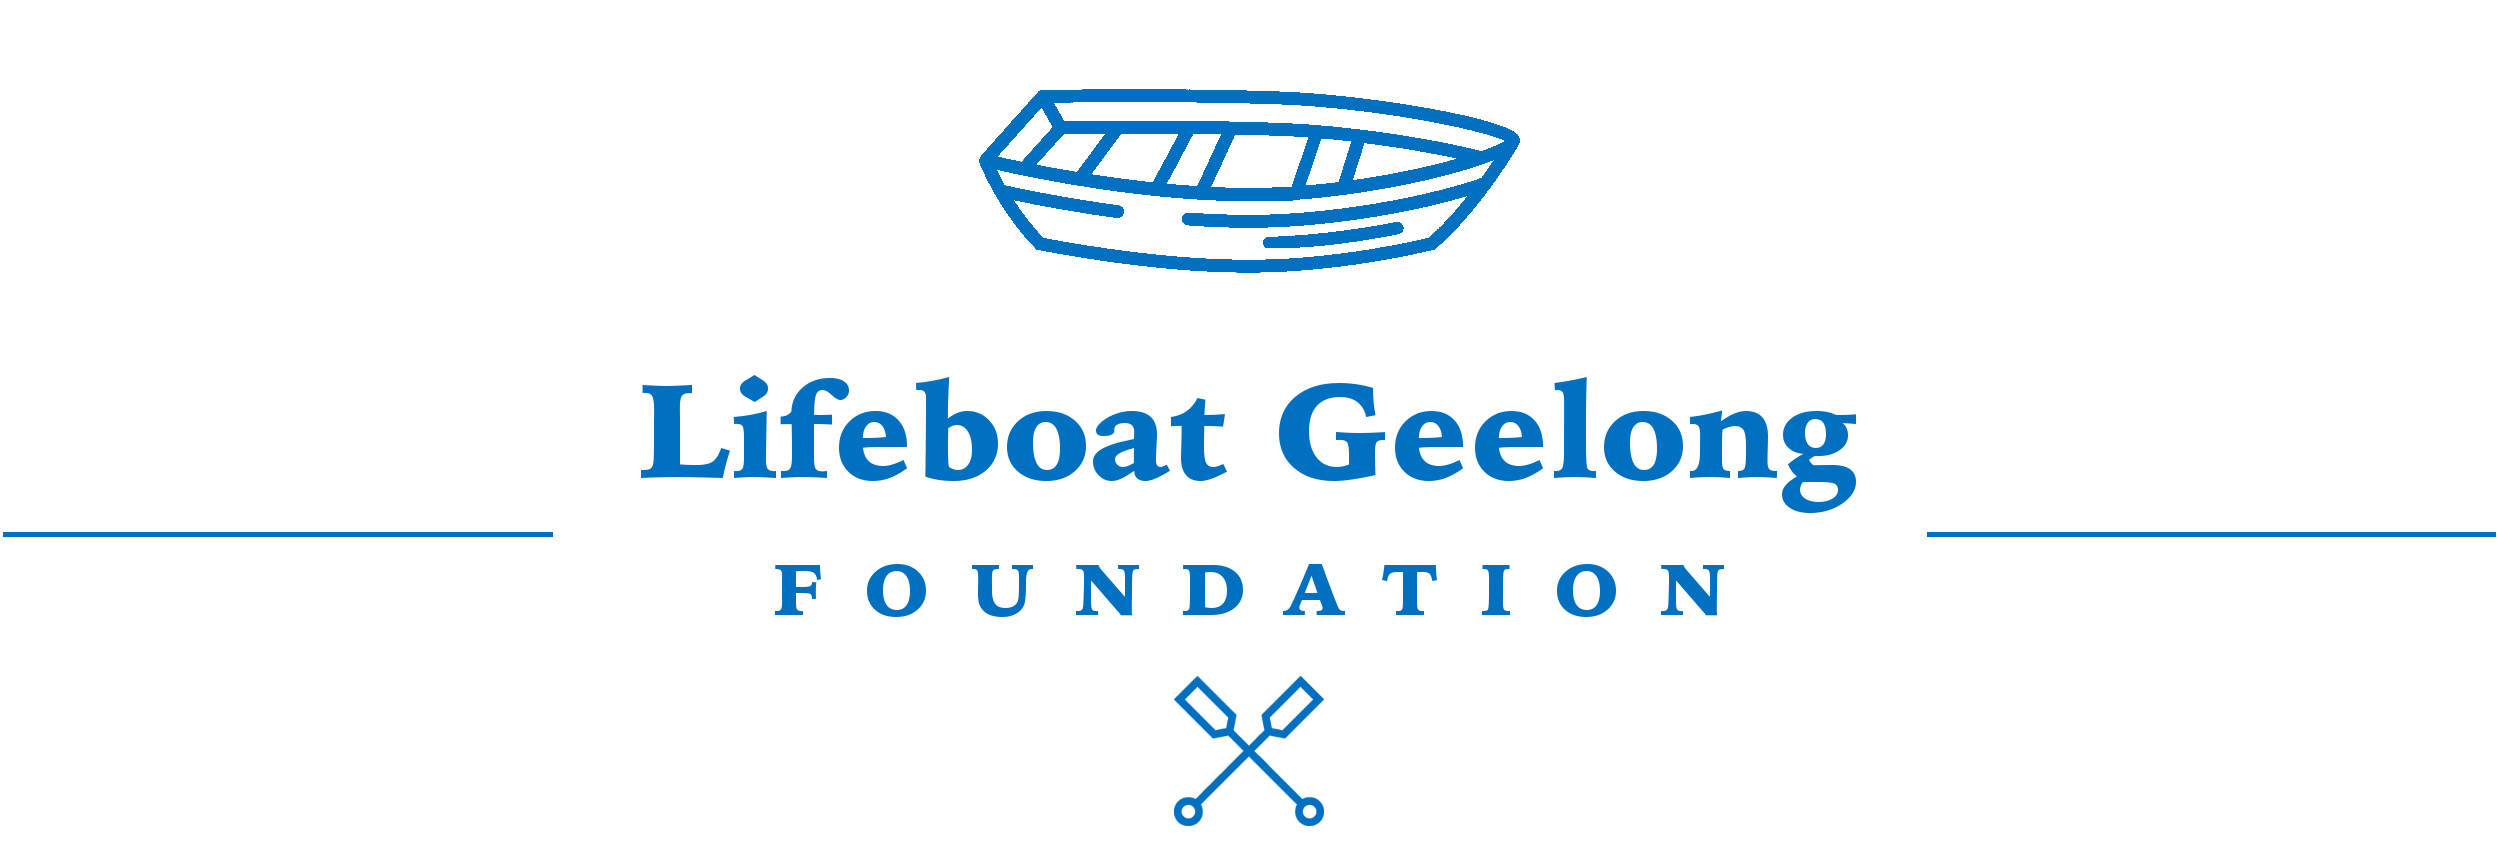 Lifeboat Geelong Logo Web.png